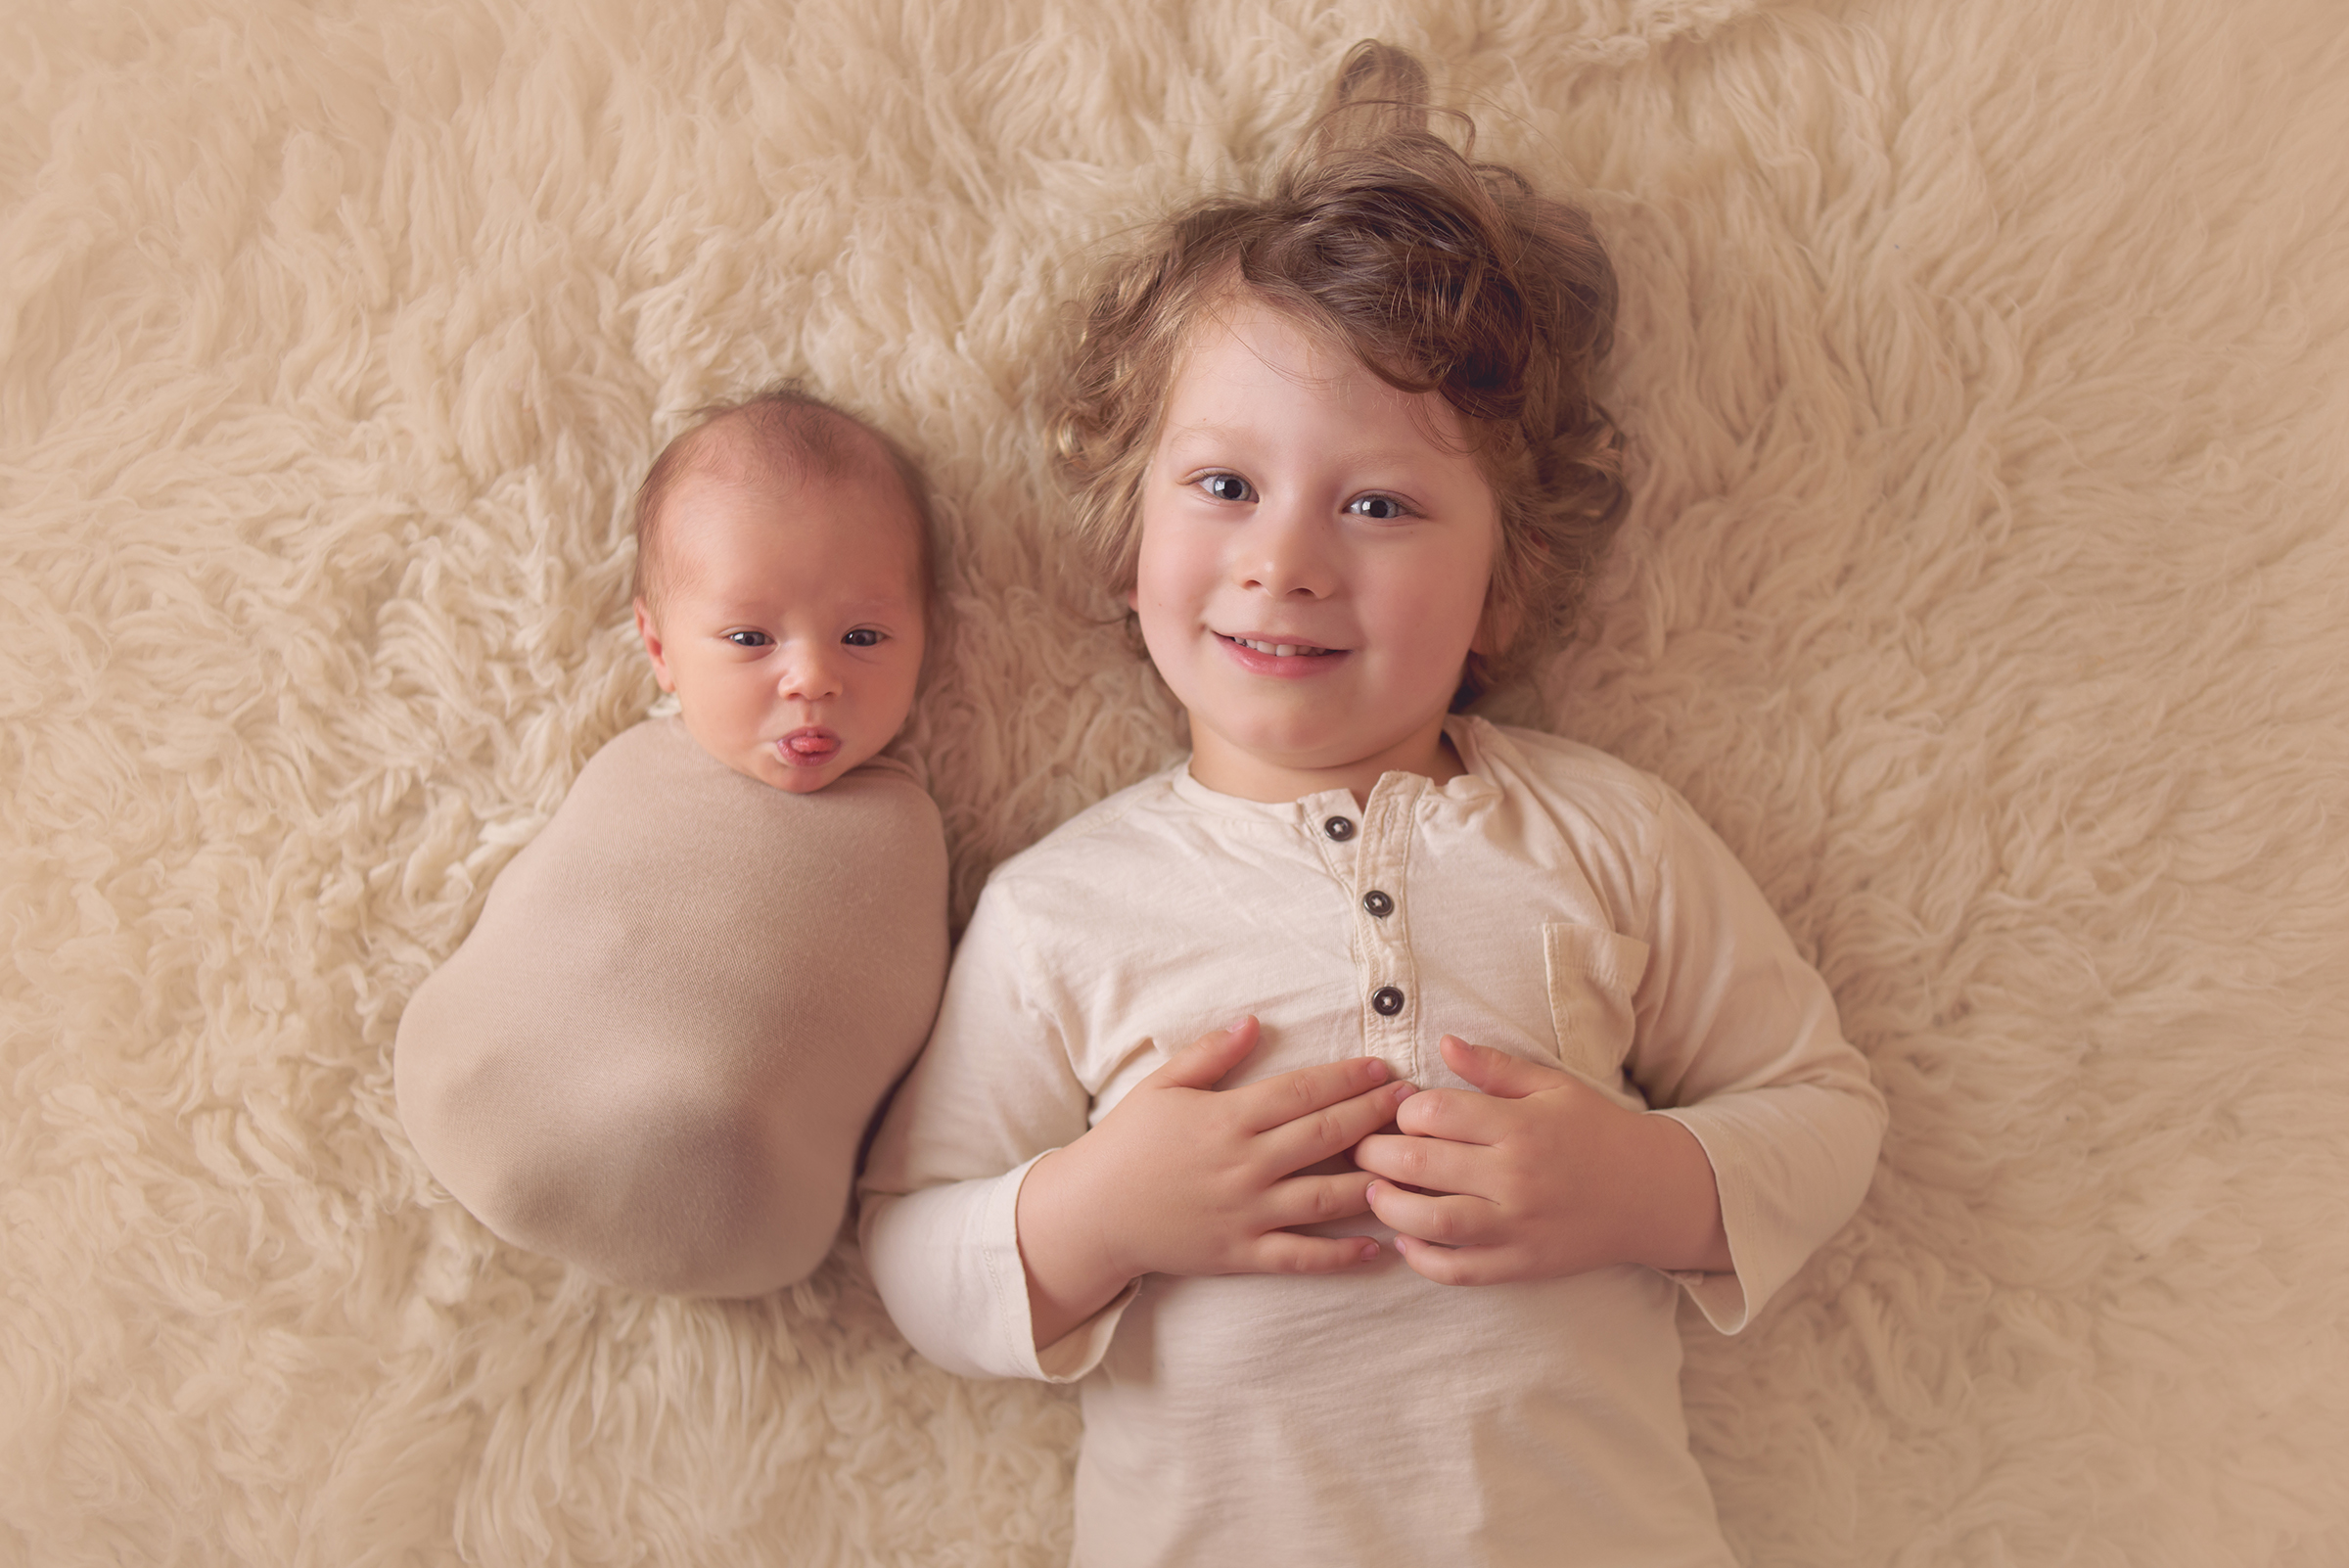 Big and little brother pose for newborn portraits during family baby photography session